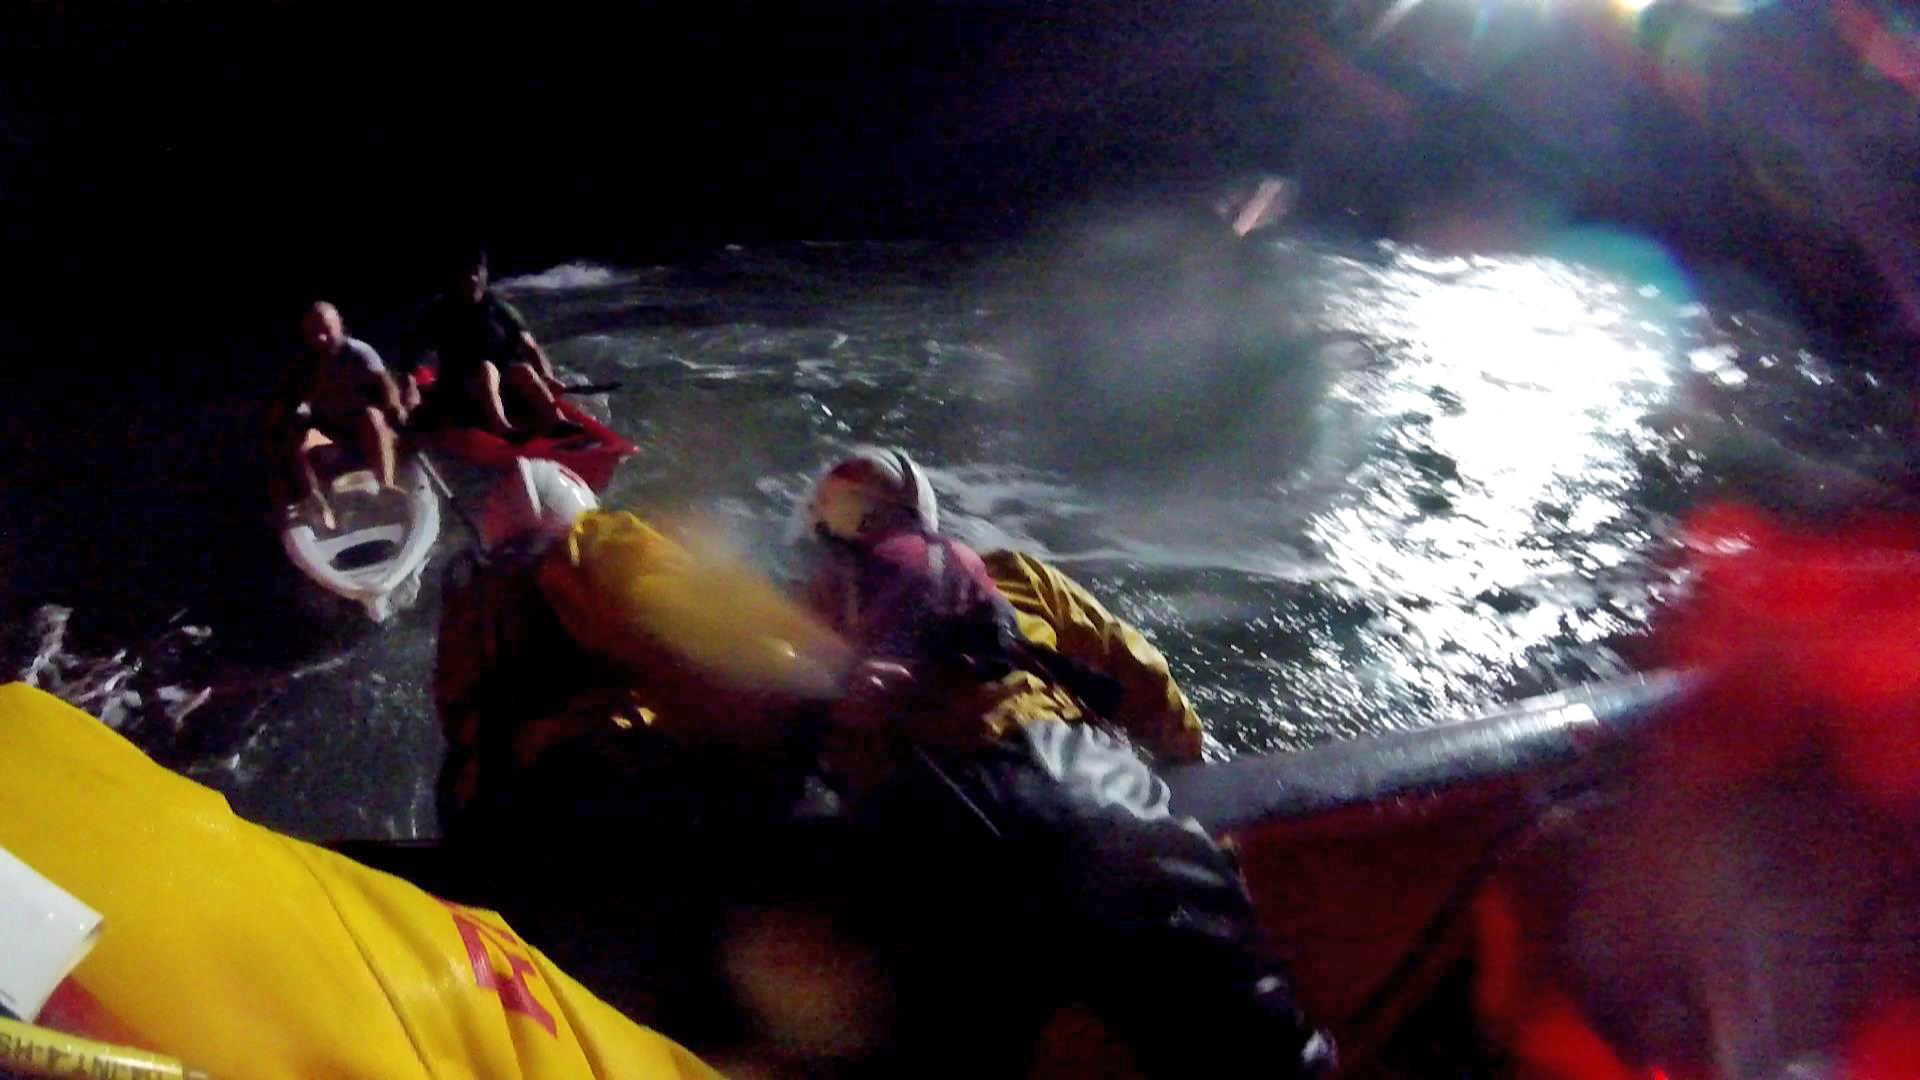 Two exhausted kayakers are found in the darkness by the RNLI lifeboat crew.